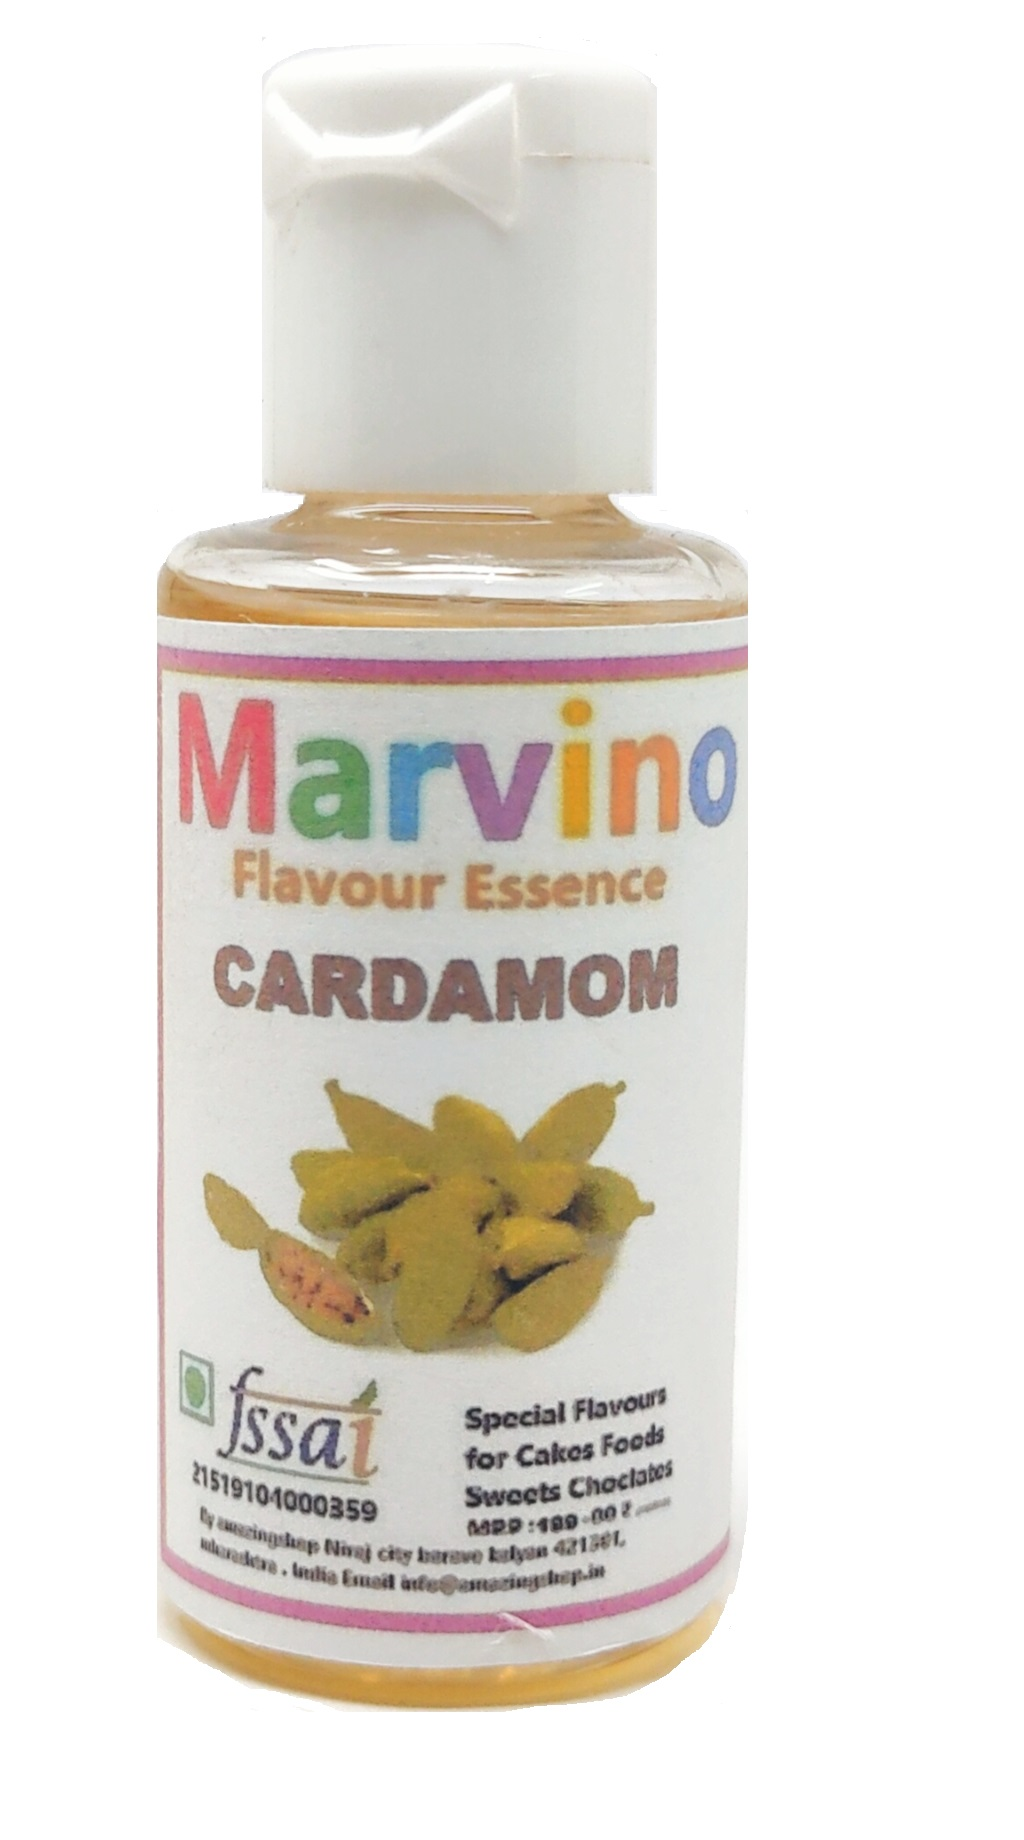 Marvino Cardamom Flavour Essence Extracts For Cakes Whip-Creams Sweets Choclates And Icecreams